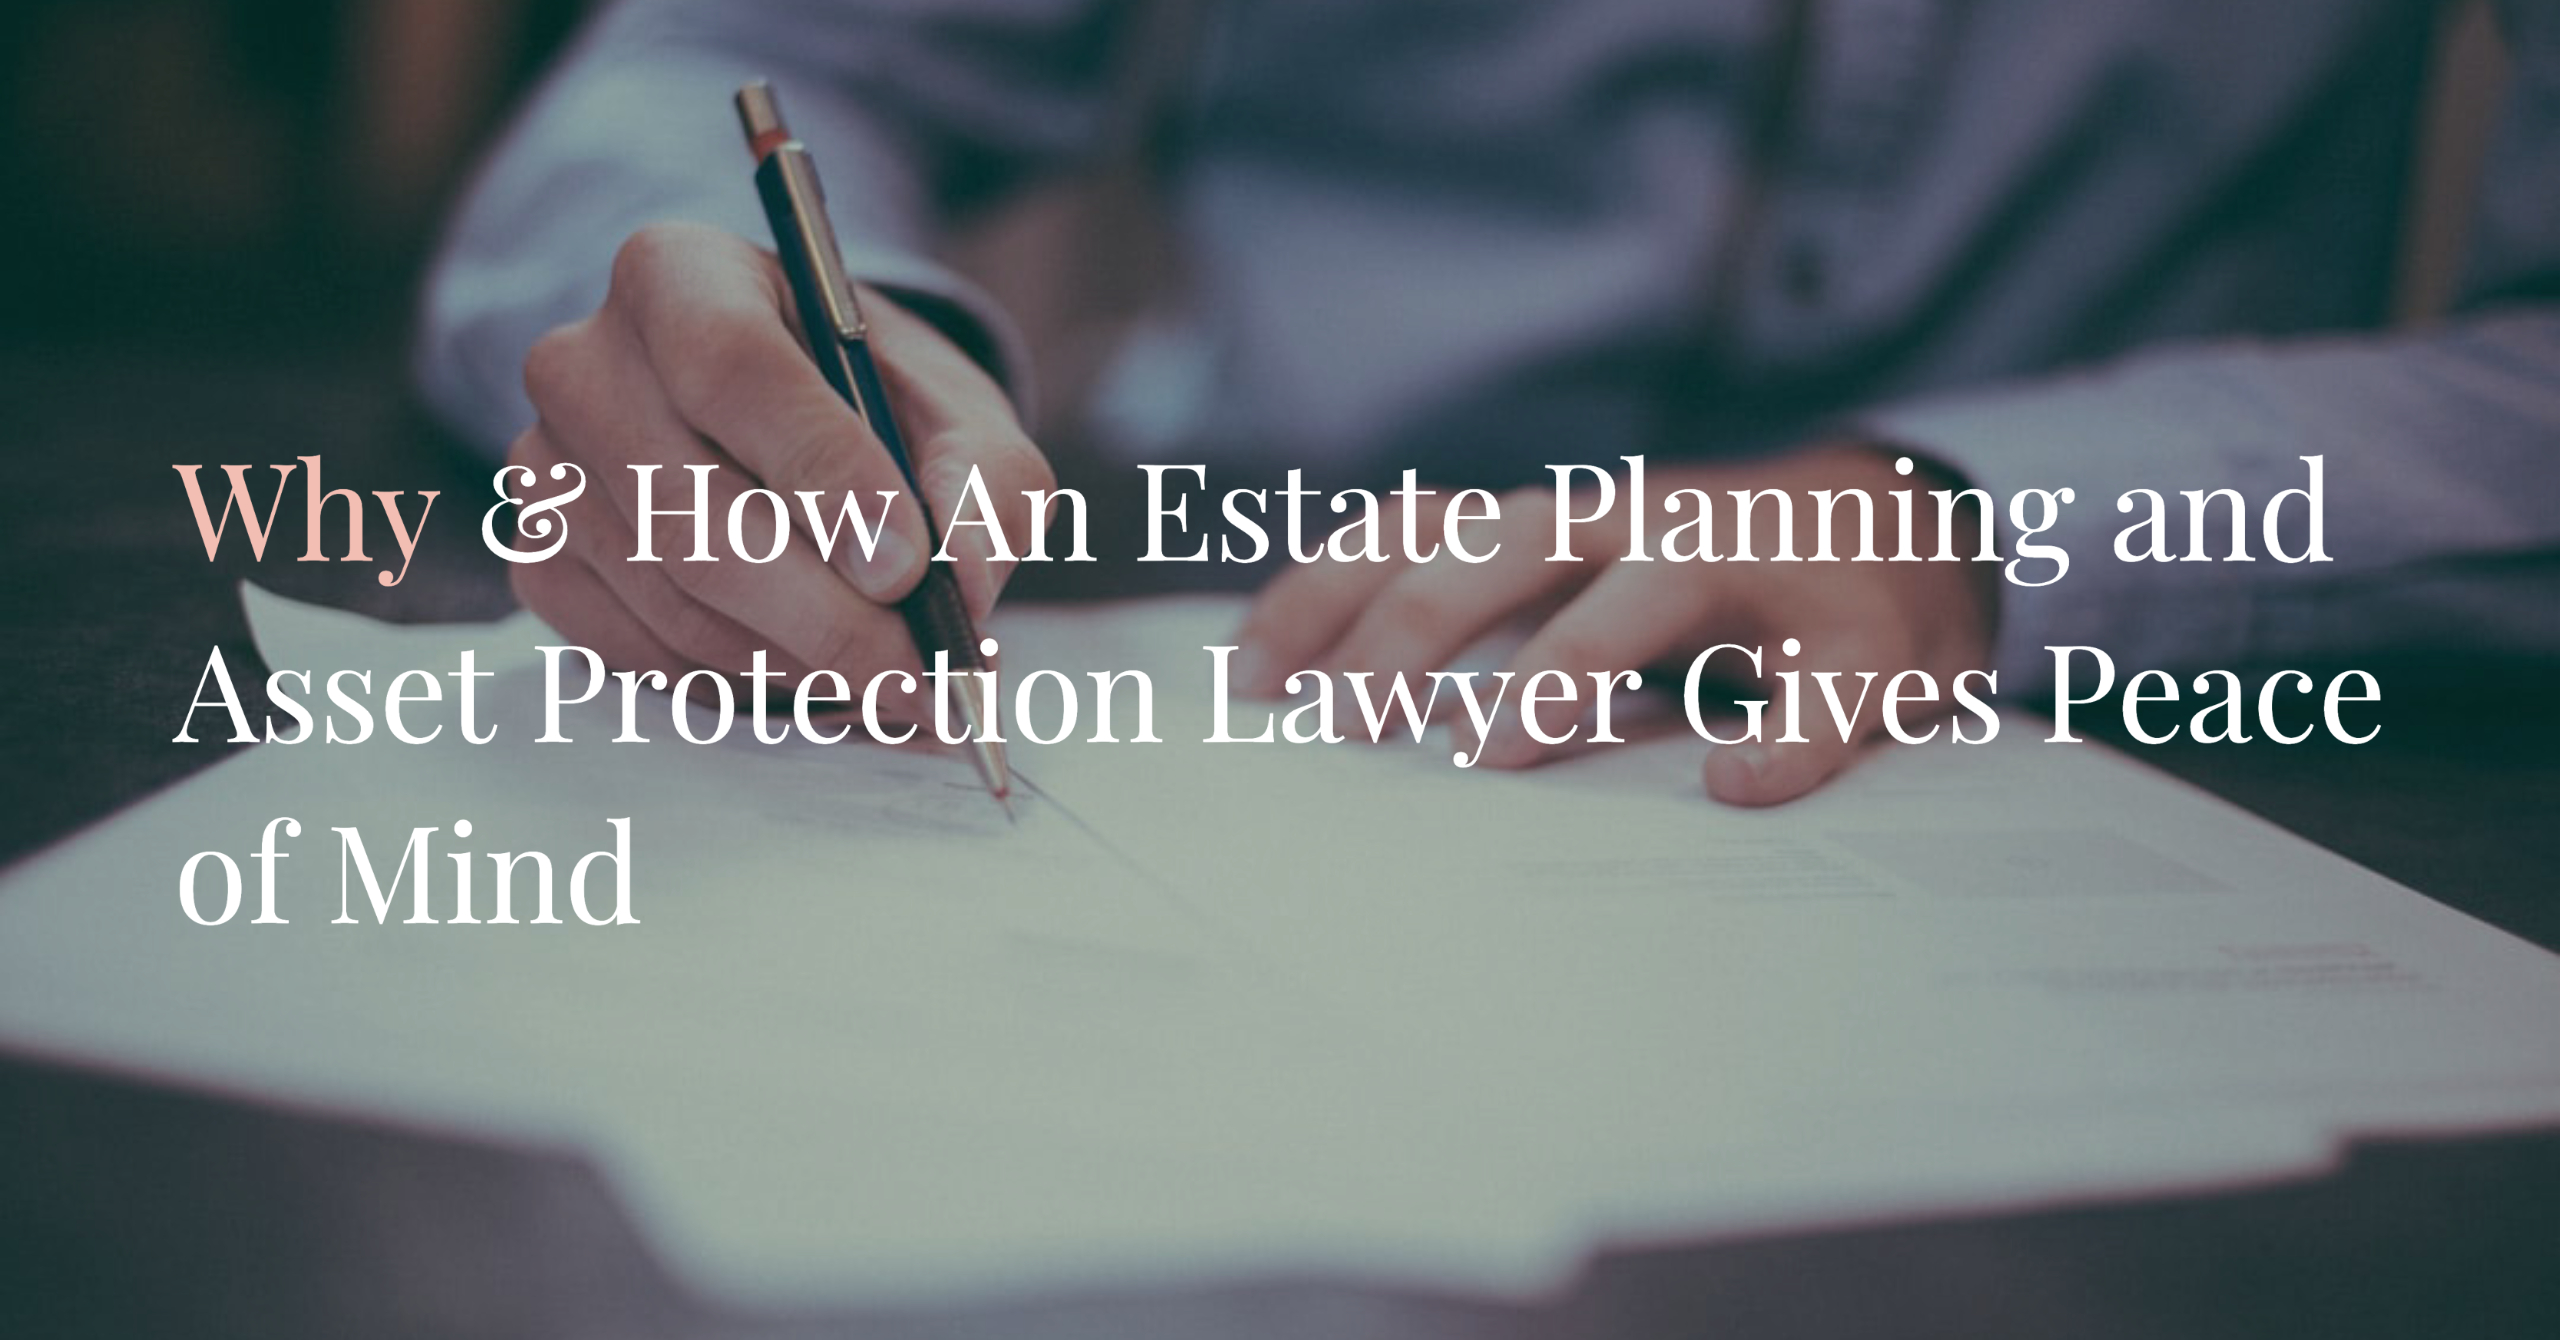 Image of estate planning estate Elder Law COVID 19 assets asset protection planning mistakes asset protection  on estate management asset protection law site